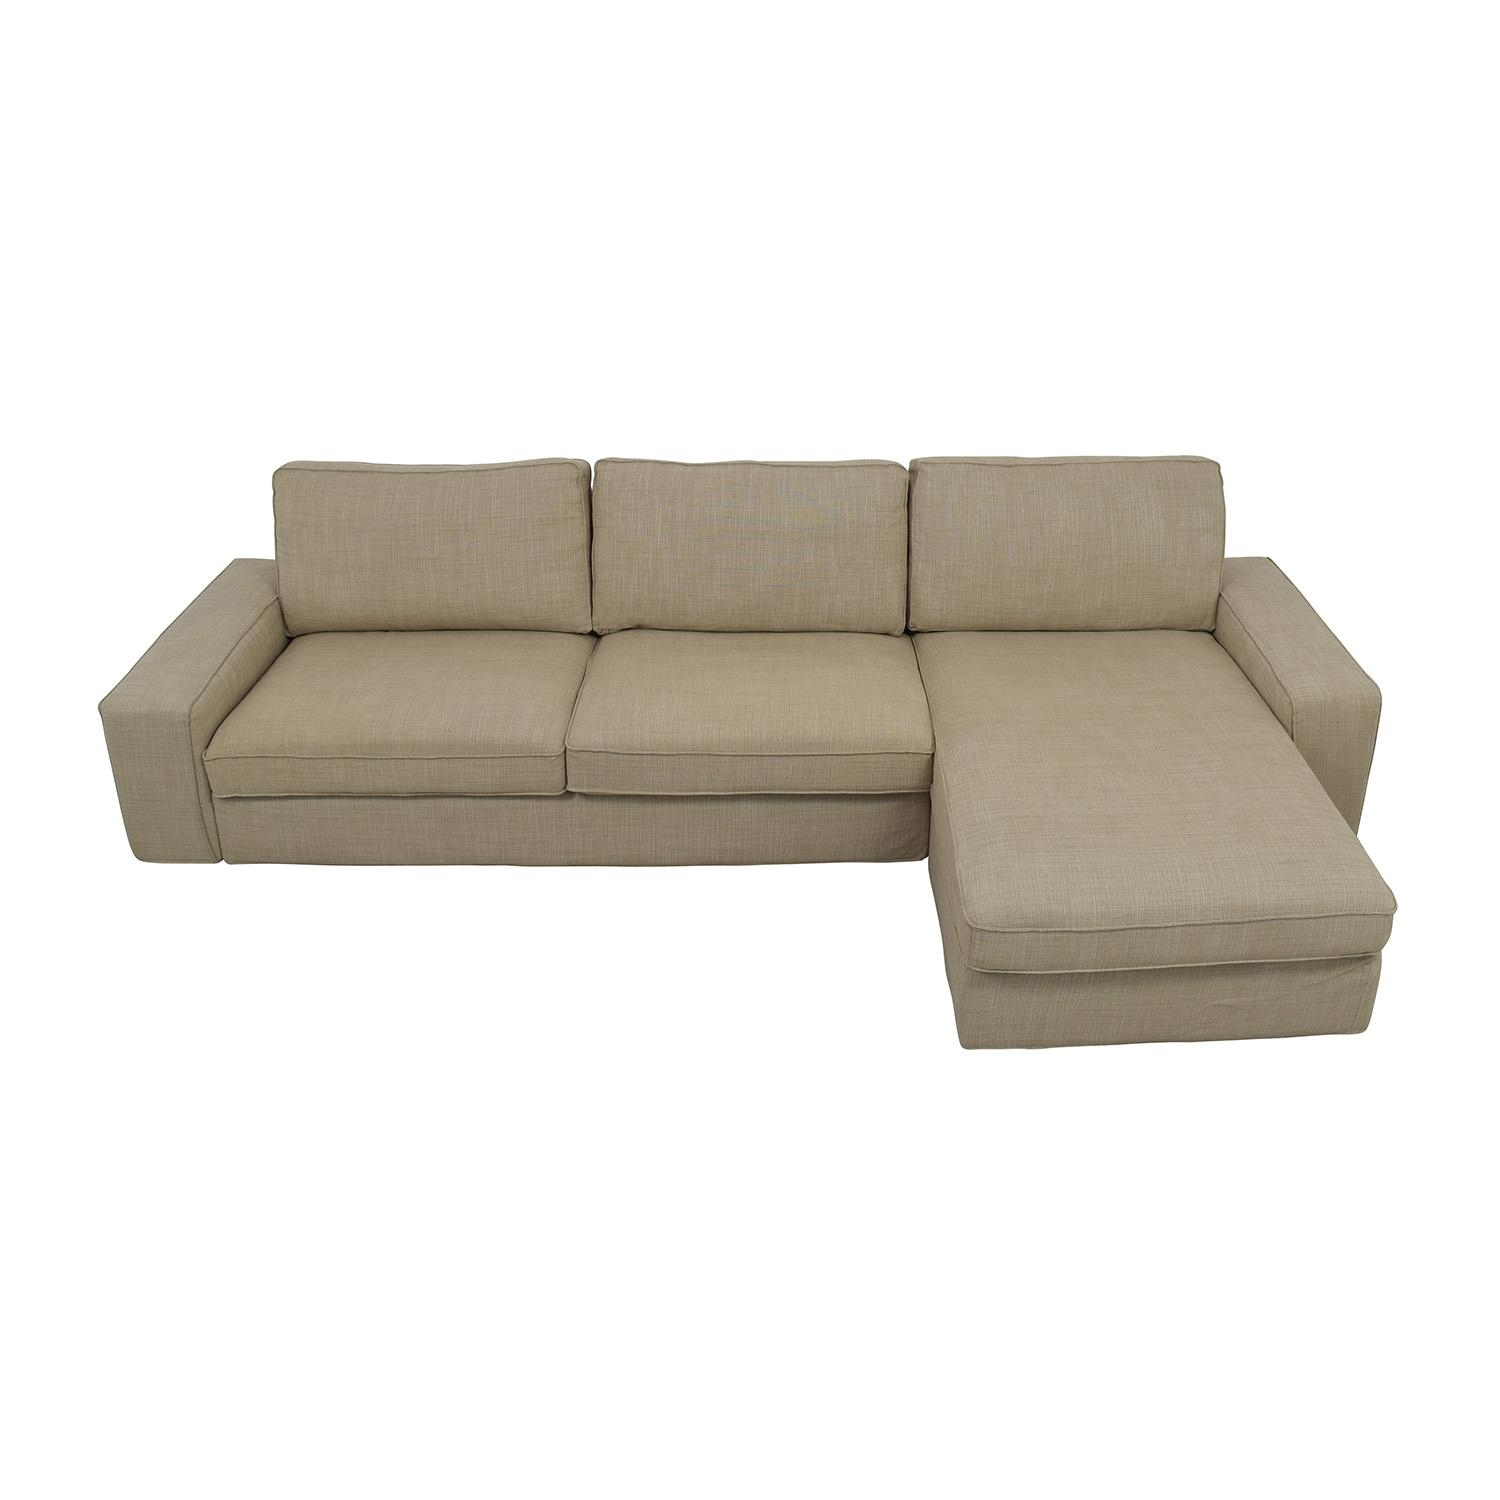 35% Off – Ikea Ikea Kivik Sectional In Hillared Beige / Sofas Throughout Beige Sofas (Image 1 of 20)